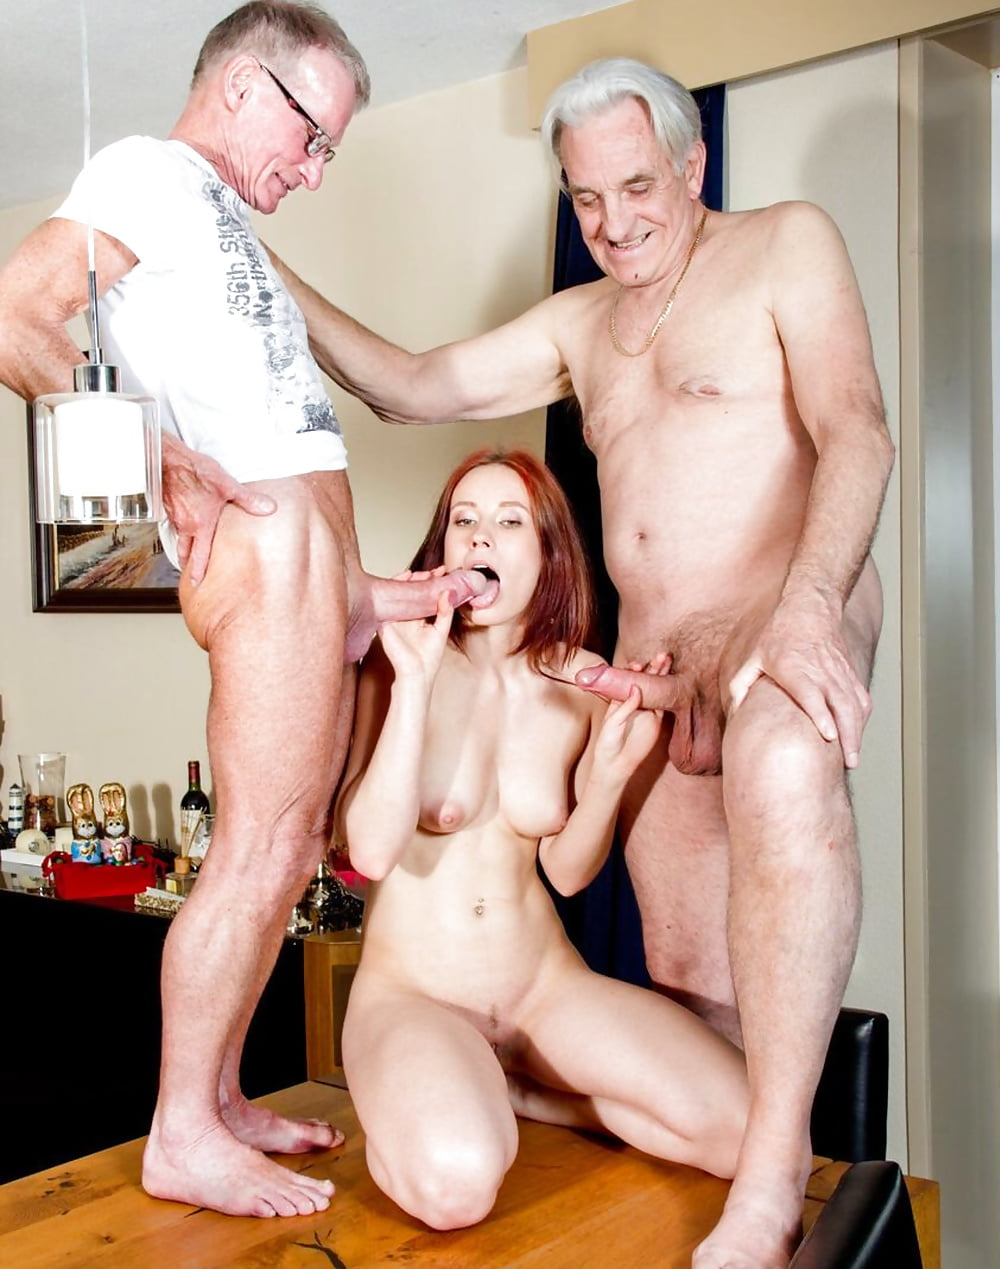 sex-video-old-young-creampie-her-virgin